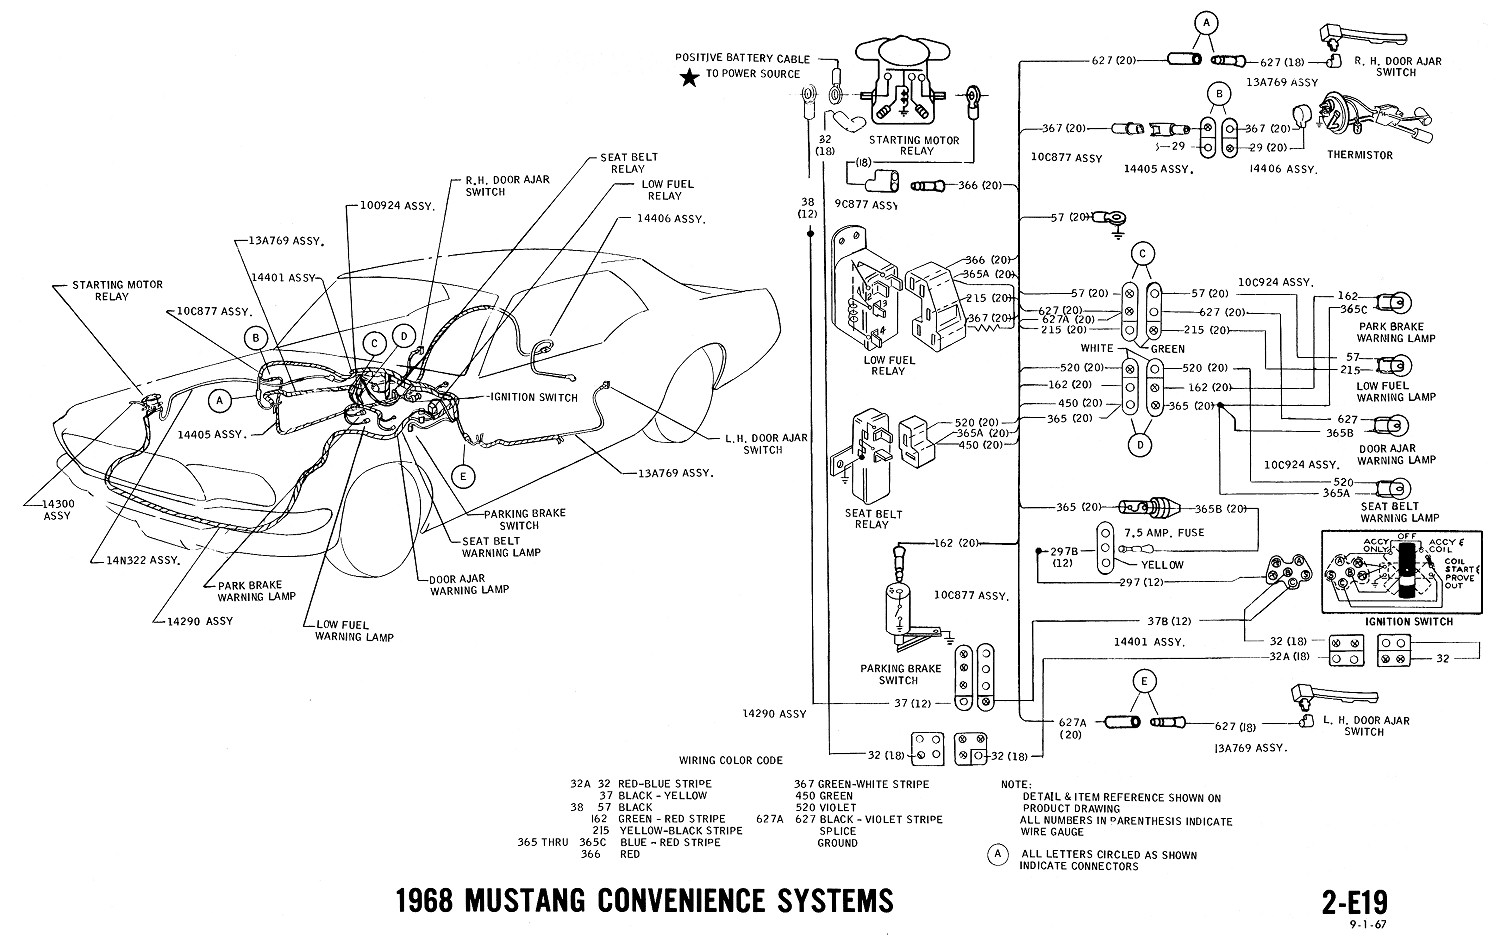 E19 1968 mustang wiring diagrams evolving software 67 cougar turn signal wiring diagram at eliteediting.co